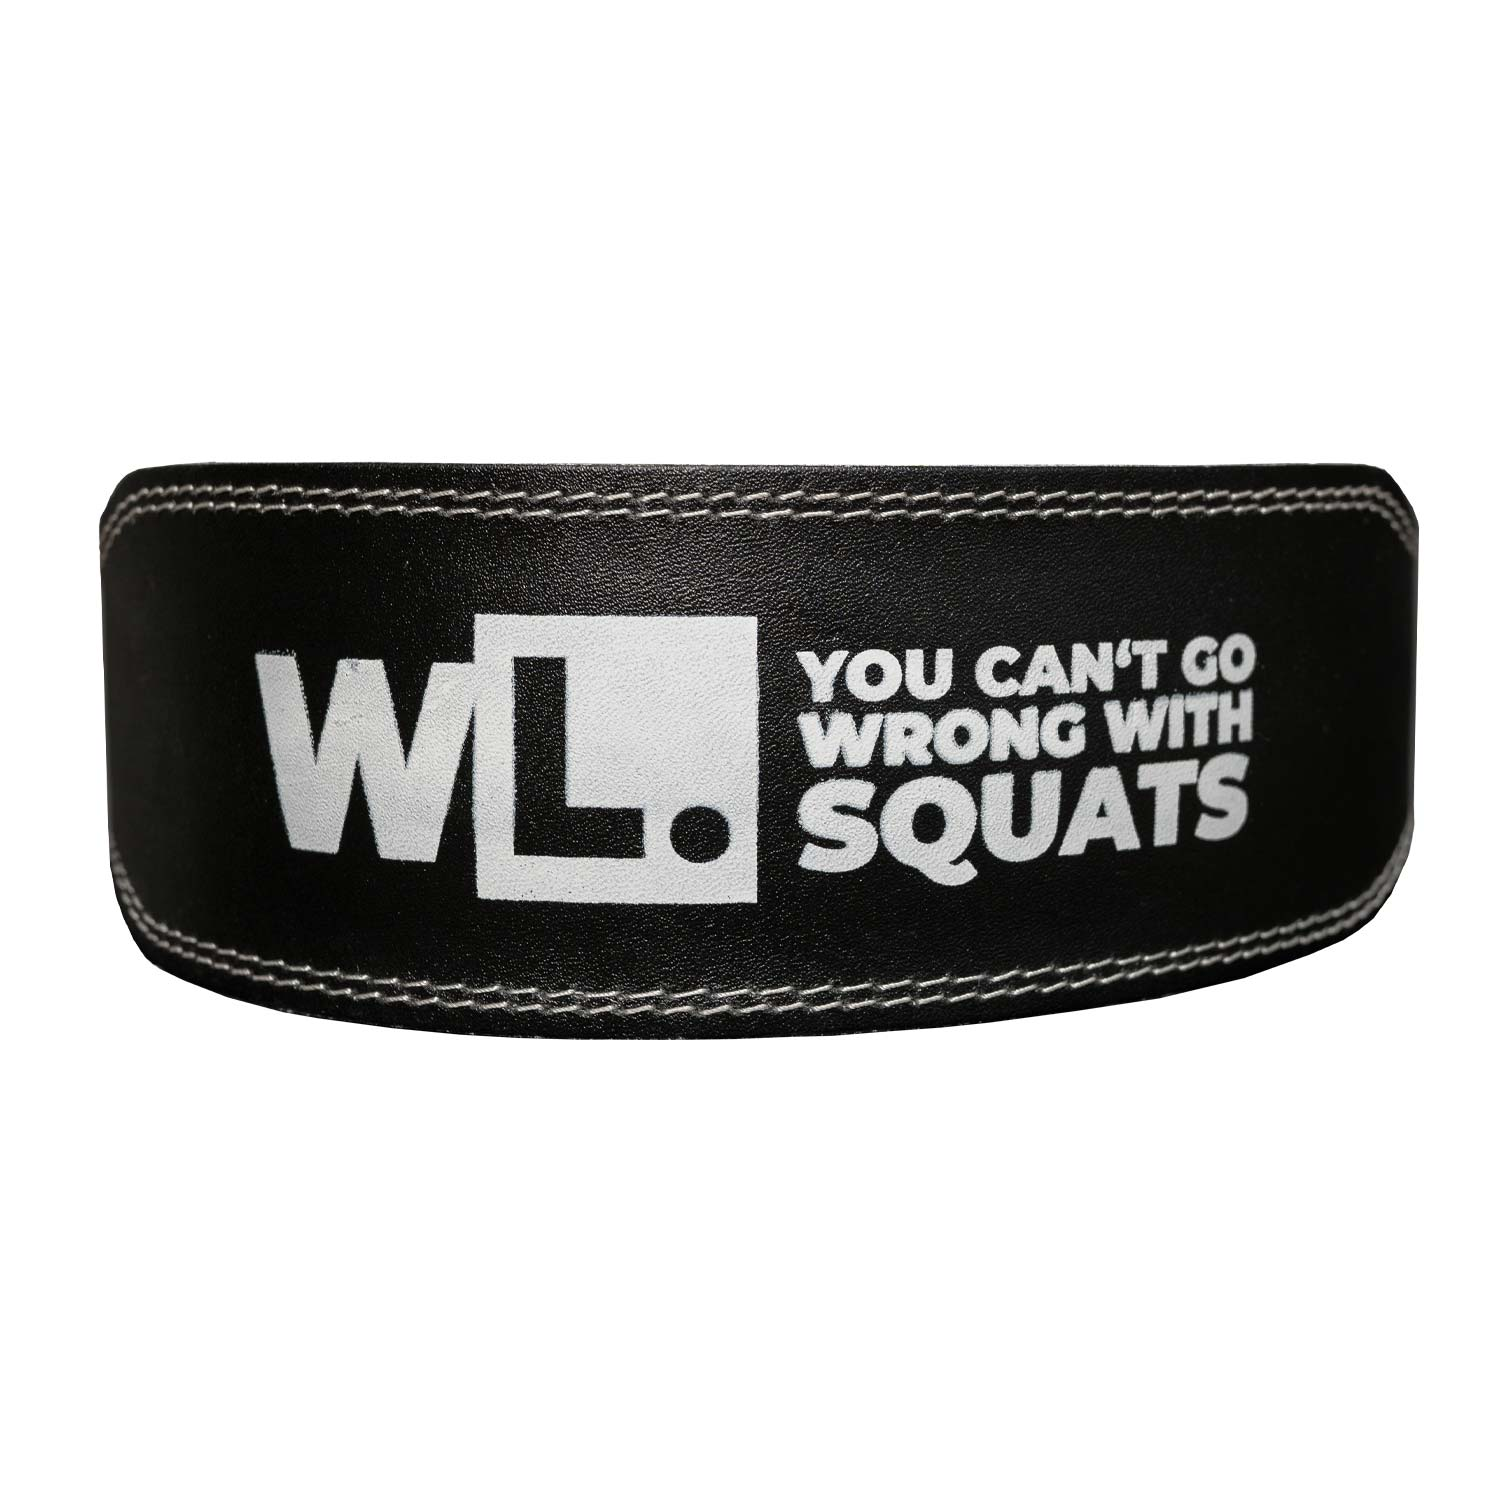 WEIGHTLFTNG.Weightlifting Belt